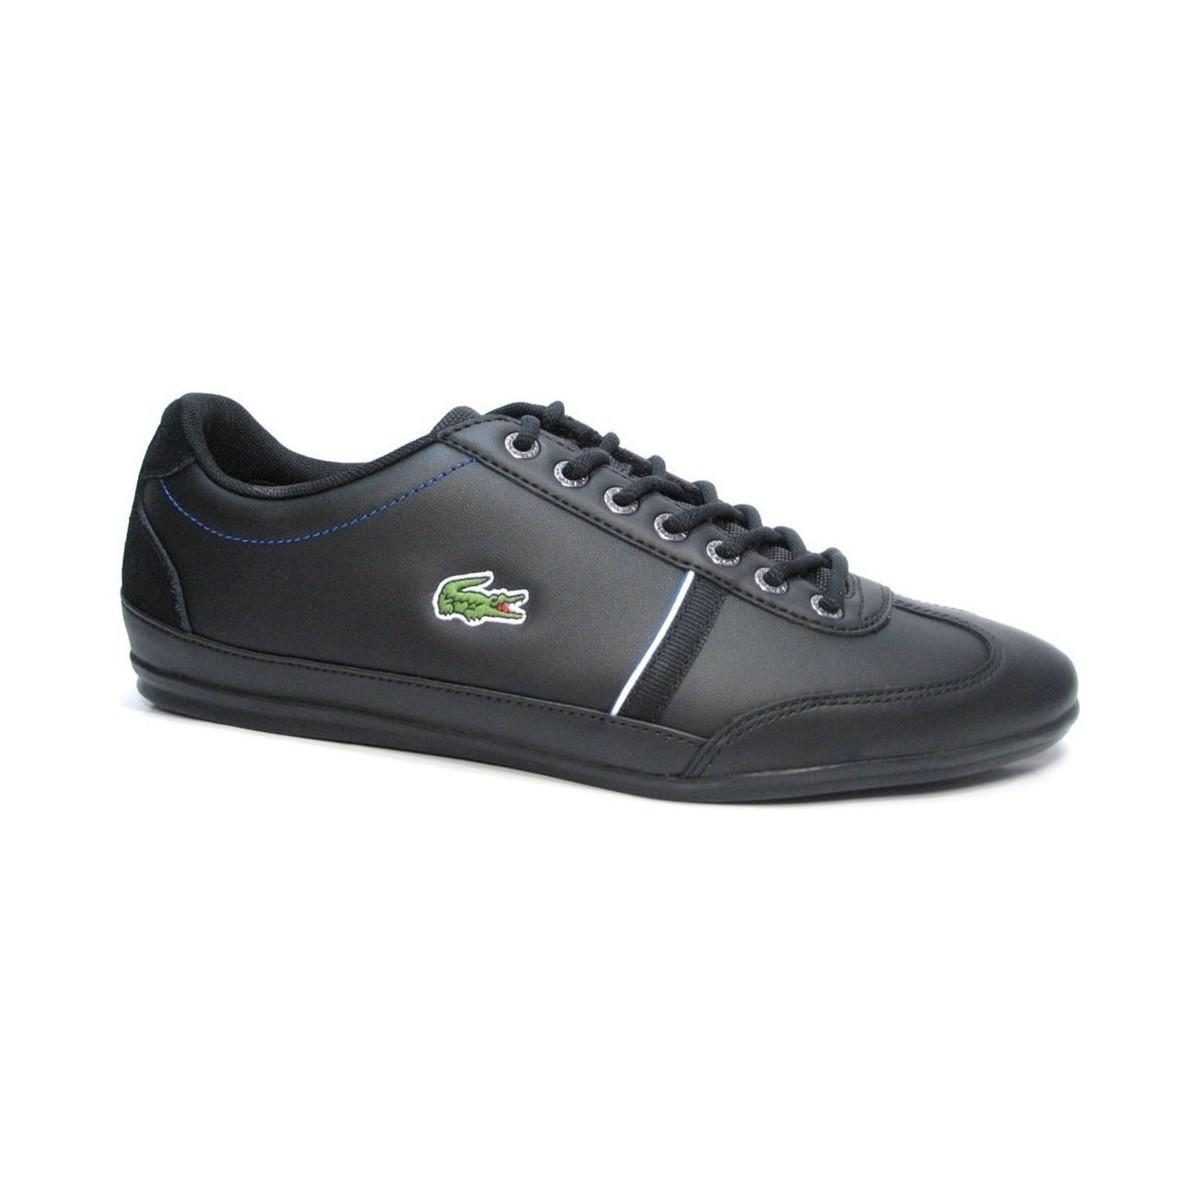 4e4f9b8c2b4c2b Lacoste Misano Sport 118 1 Cam Blkdk Blu Men s Shoes (trainers) In ...